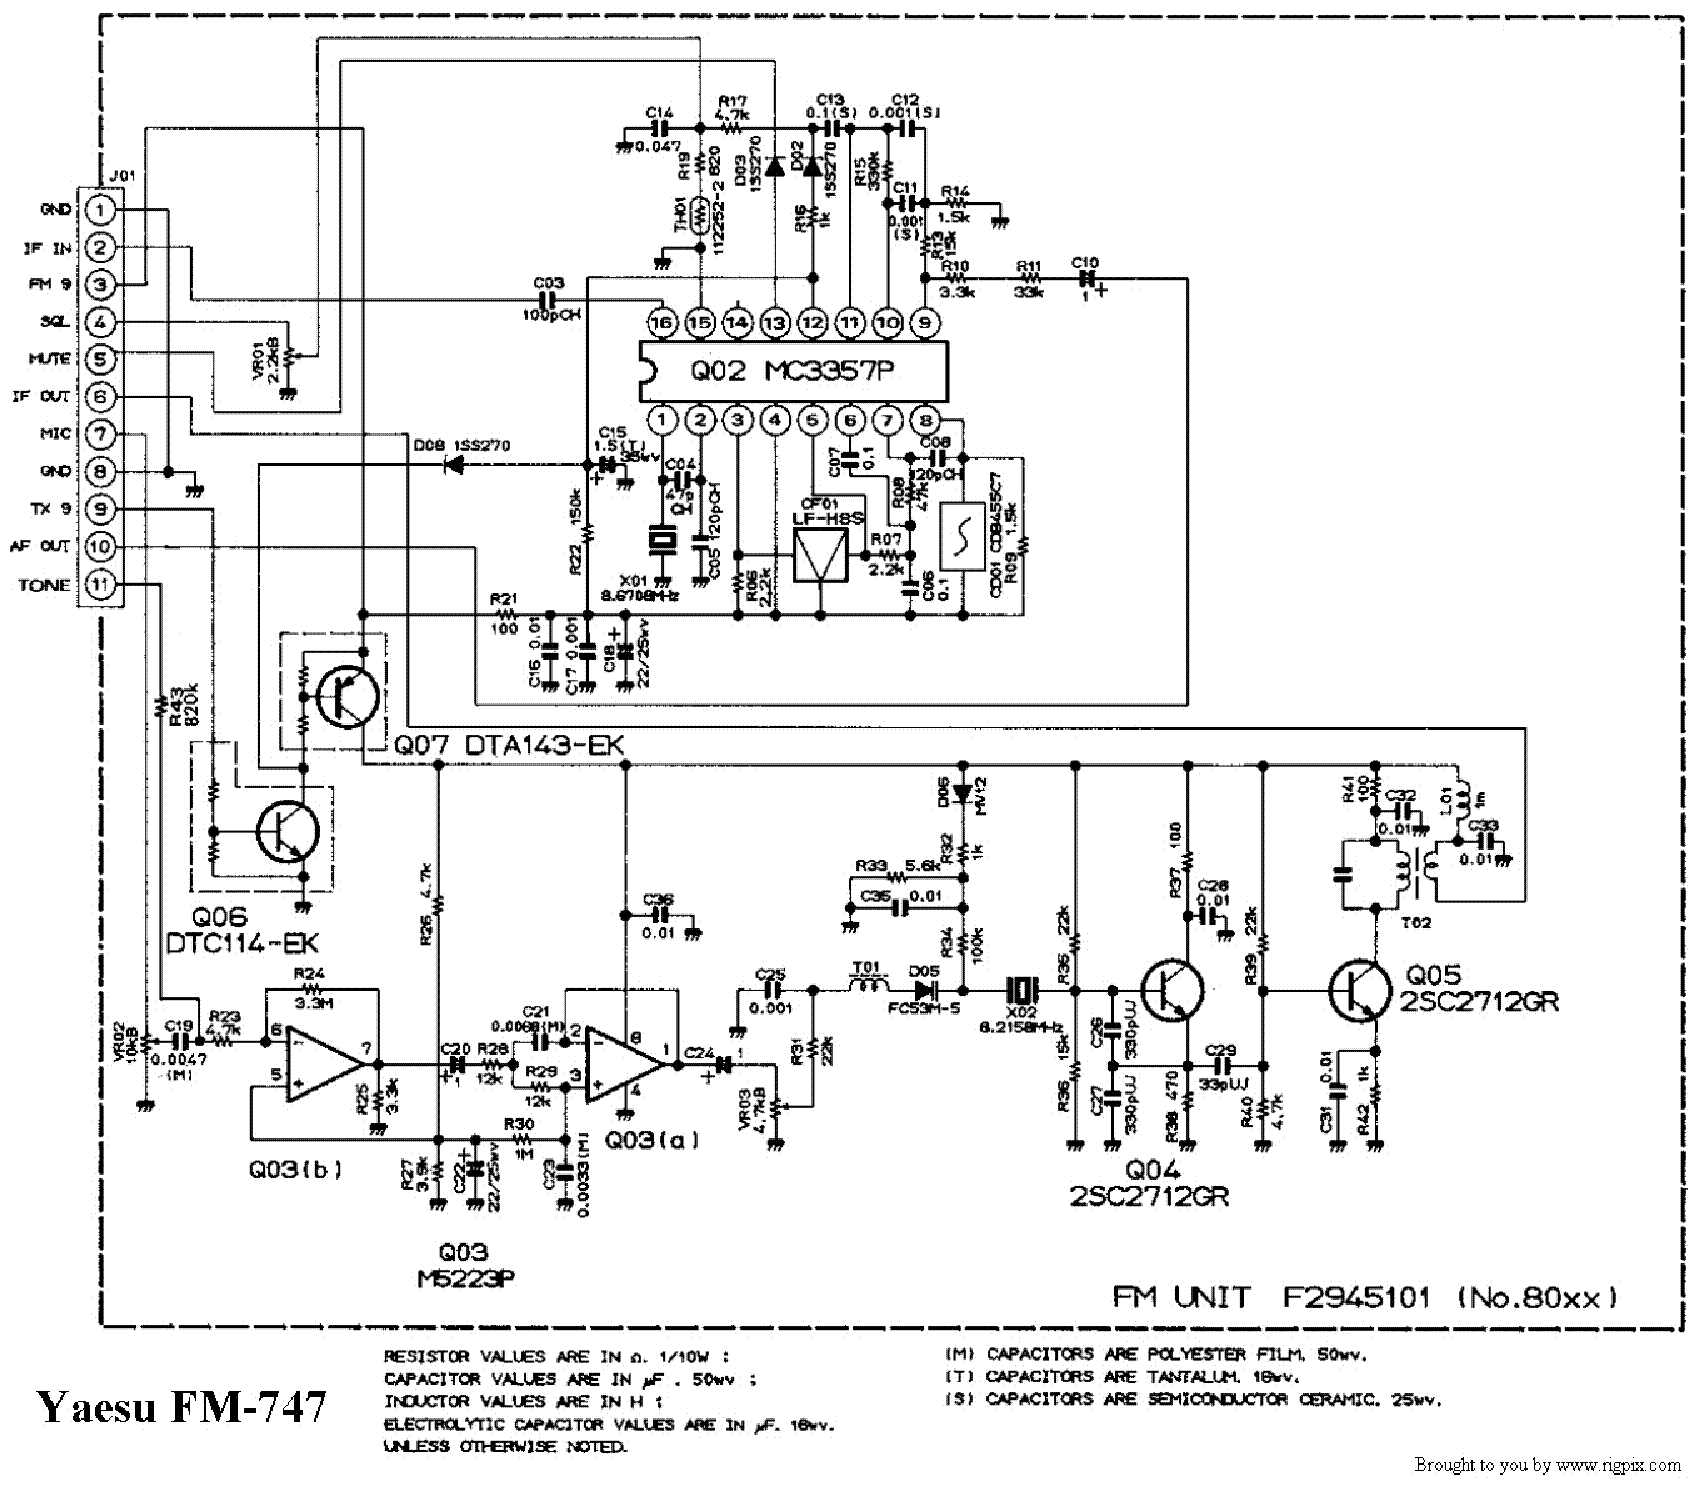 YAESU FT-8100R Service Manual free download, schematics